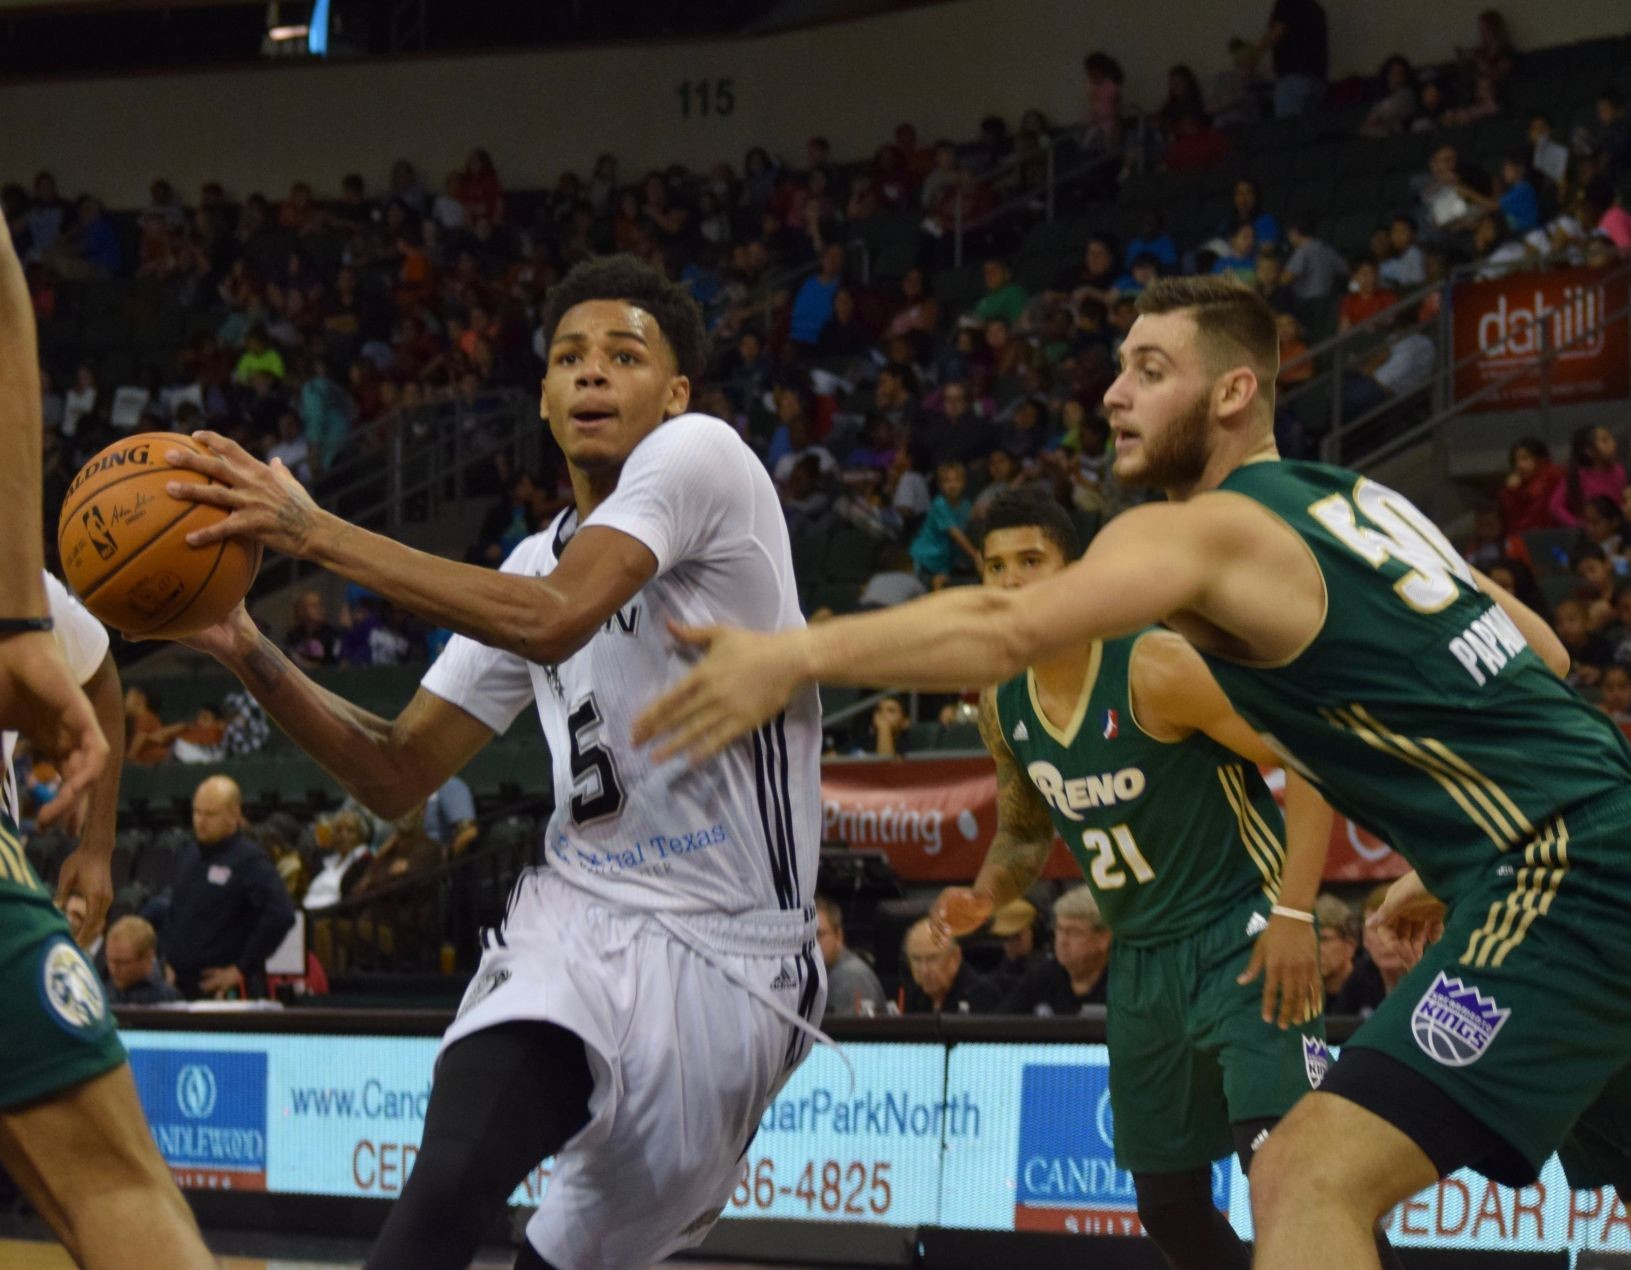 Dejounte Murray nearly had a triple-double, scoring 14 points, grabbing 10 rebounds and dishing out seven assists as the Austin Spurs beat the Reno Bighorns 115-92 Tuesday afternoon.